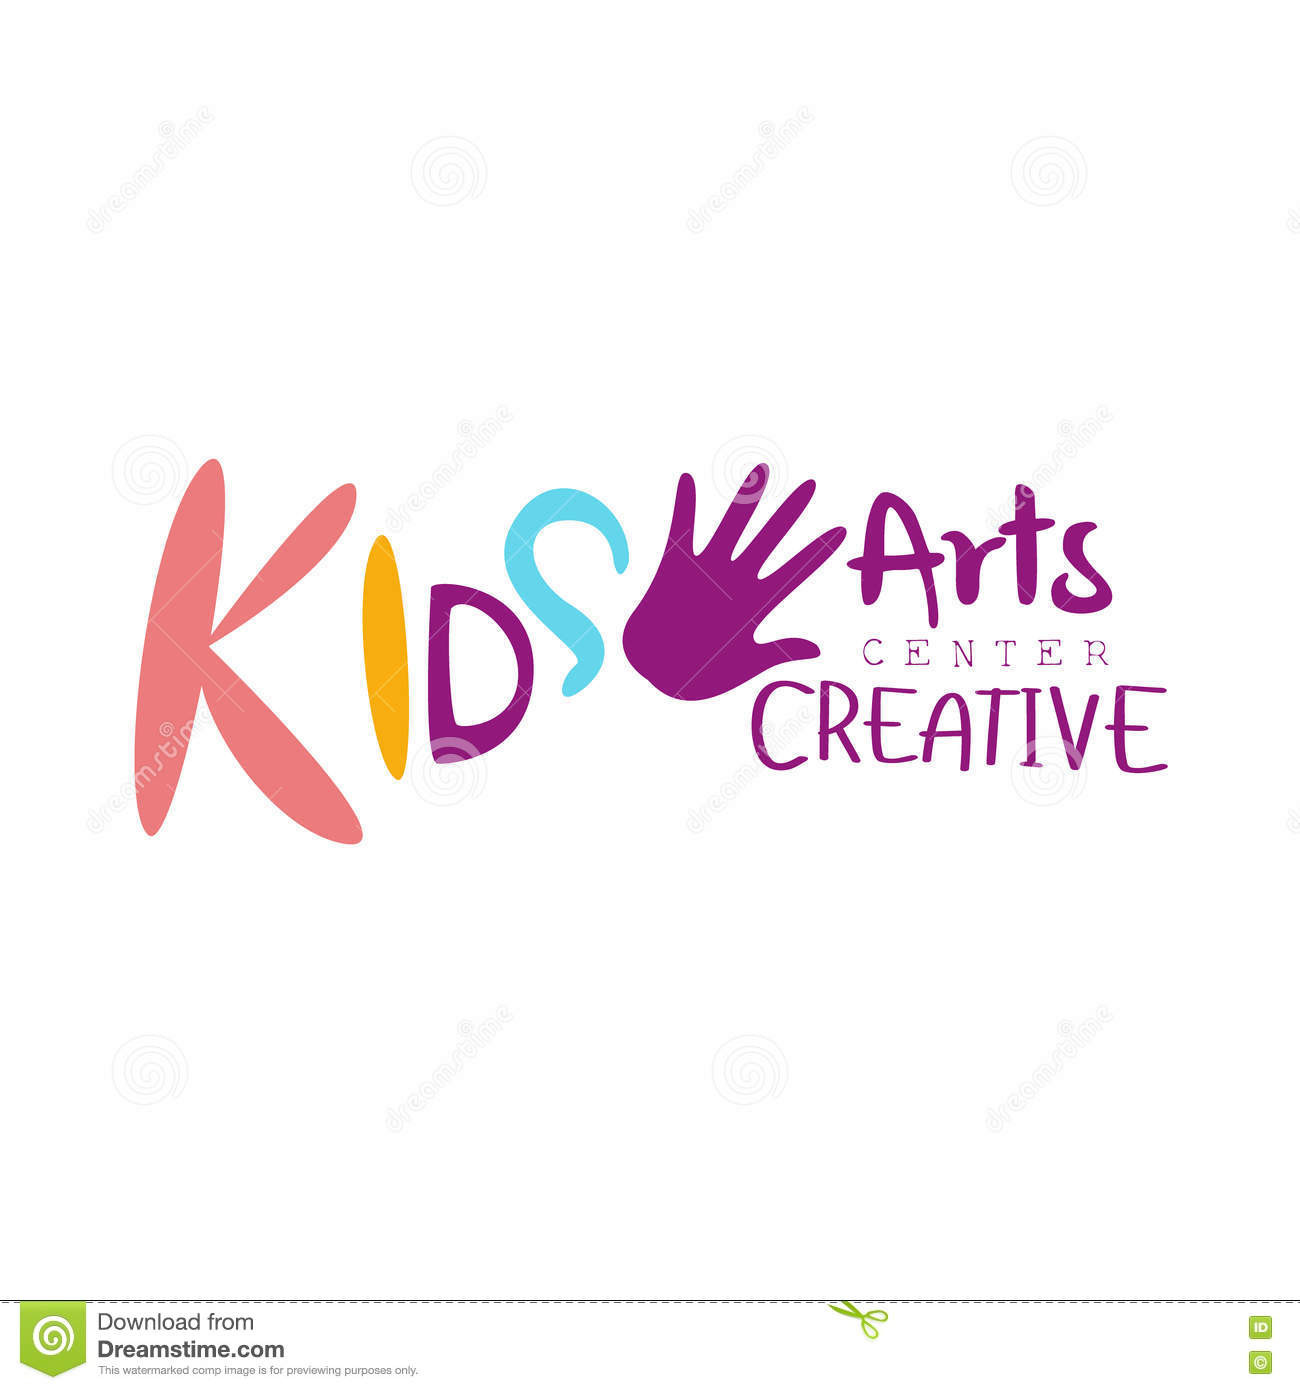 Kids Creative Class Template Promotional Logo With Child Hand Print, Symbols Of Art and Creativity